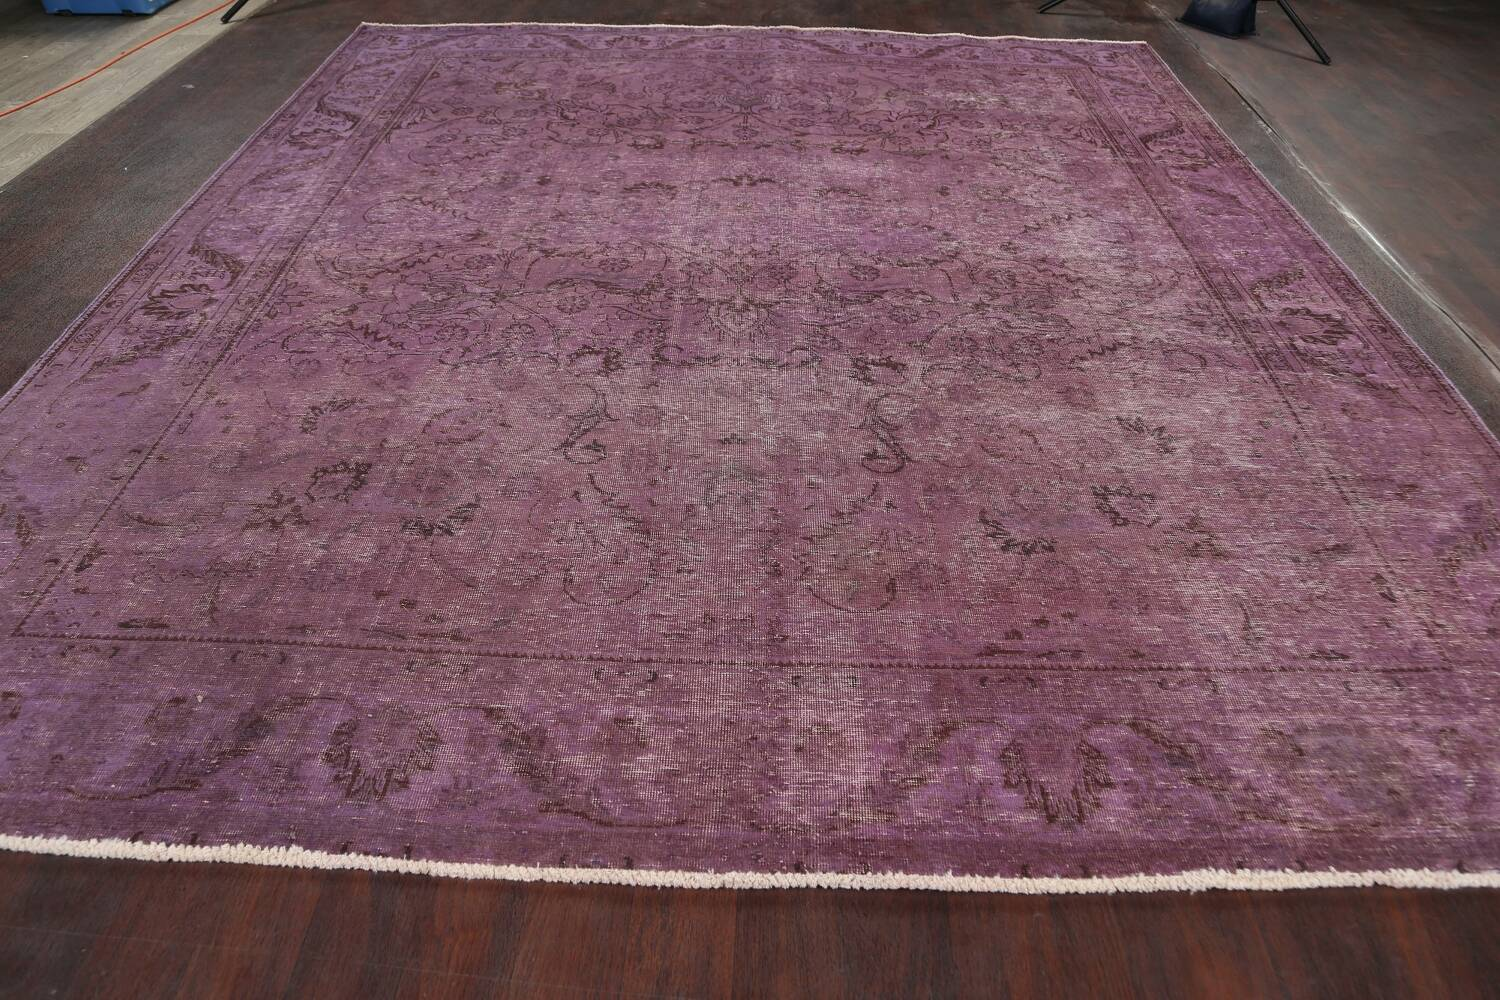 Distressed Over-dyed Tabriz Persian Area Rug 10x11 image 14